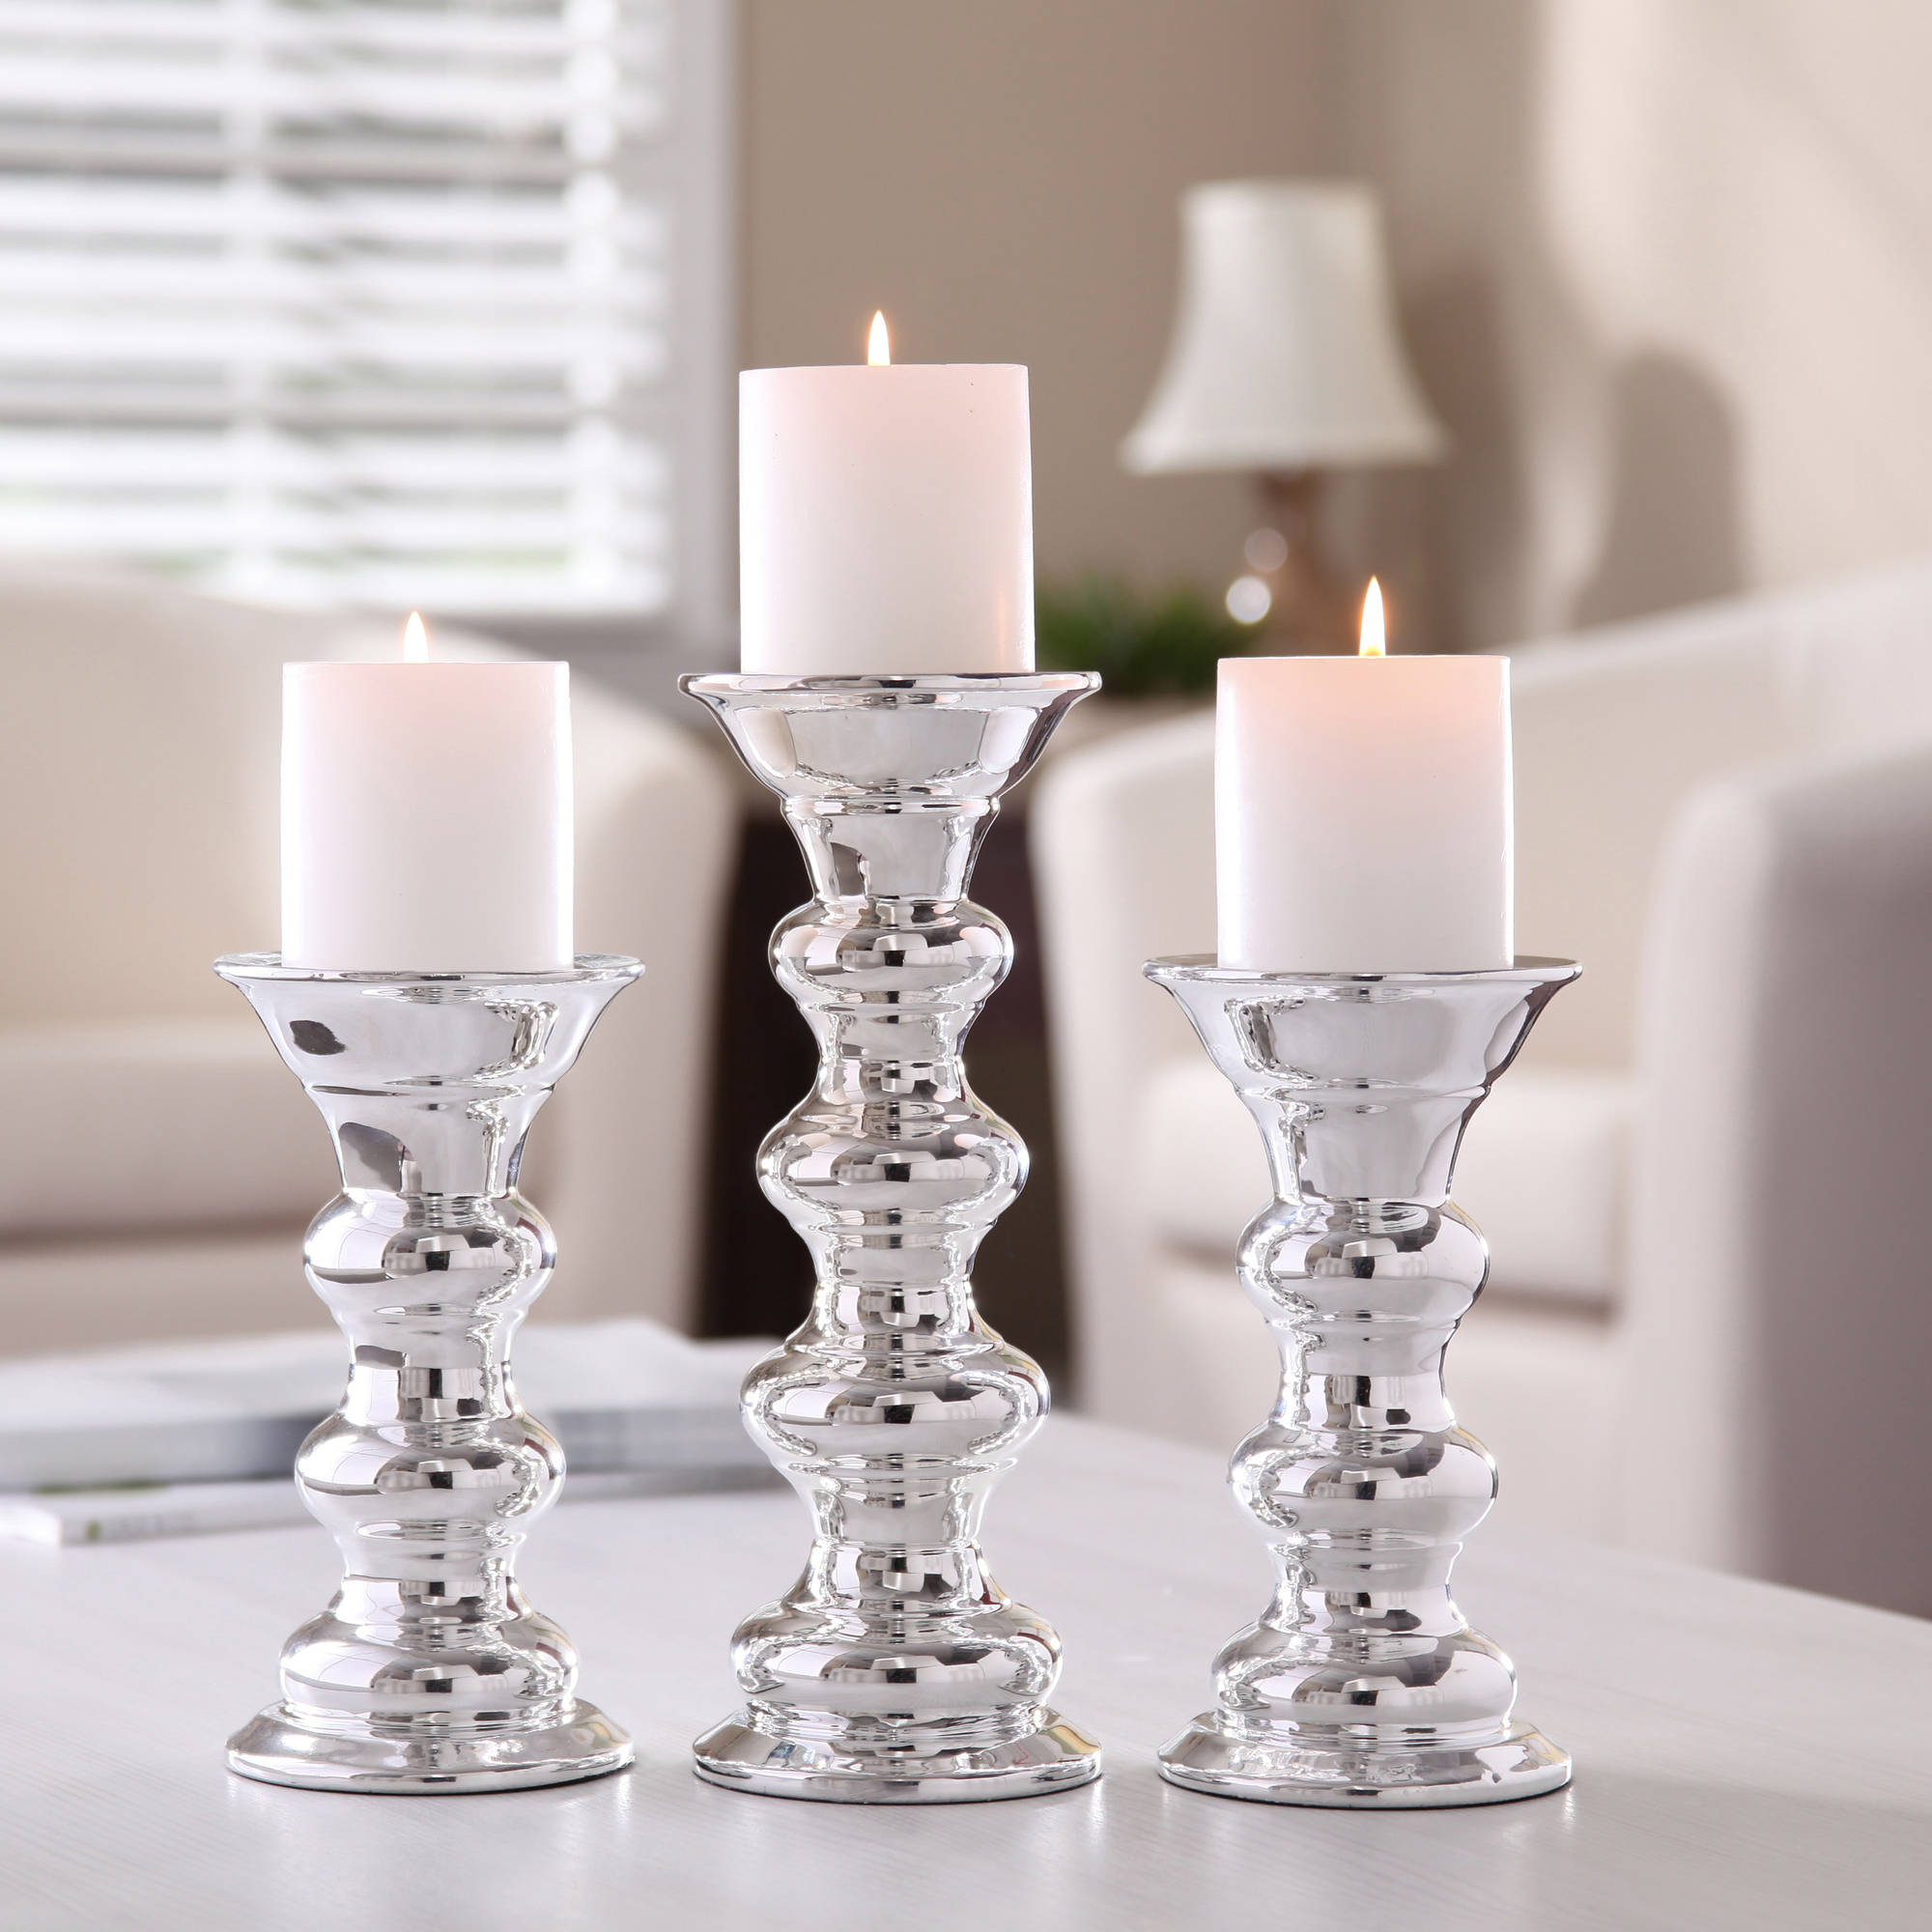 Better Homes and Gardens Ceramic Metallic Pillar Candle Holders, Set of 3 by